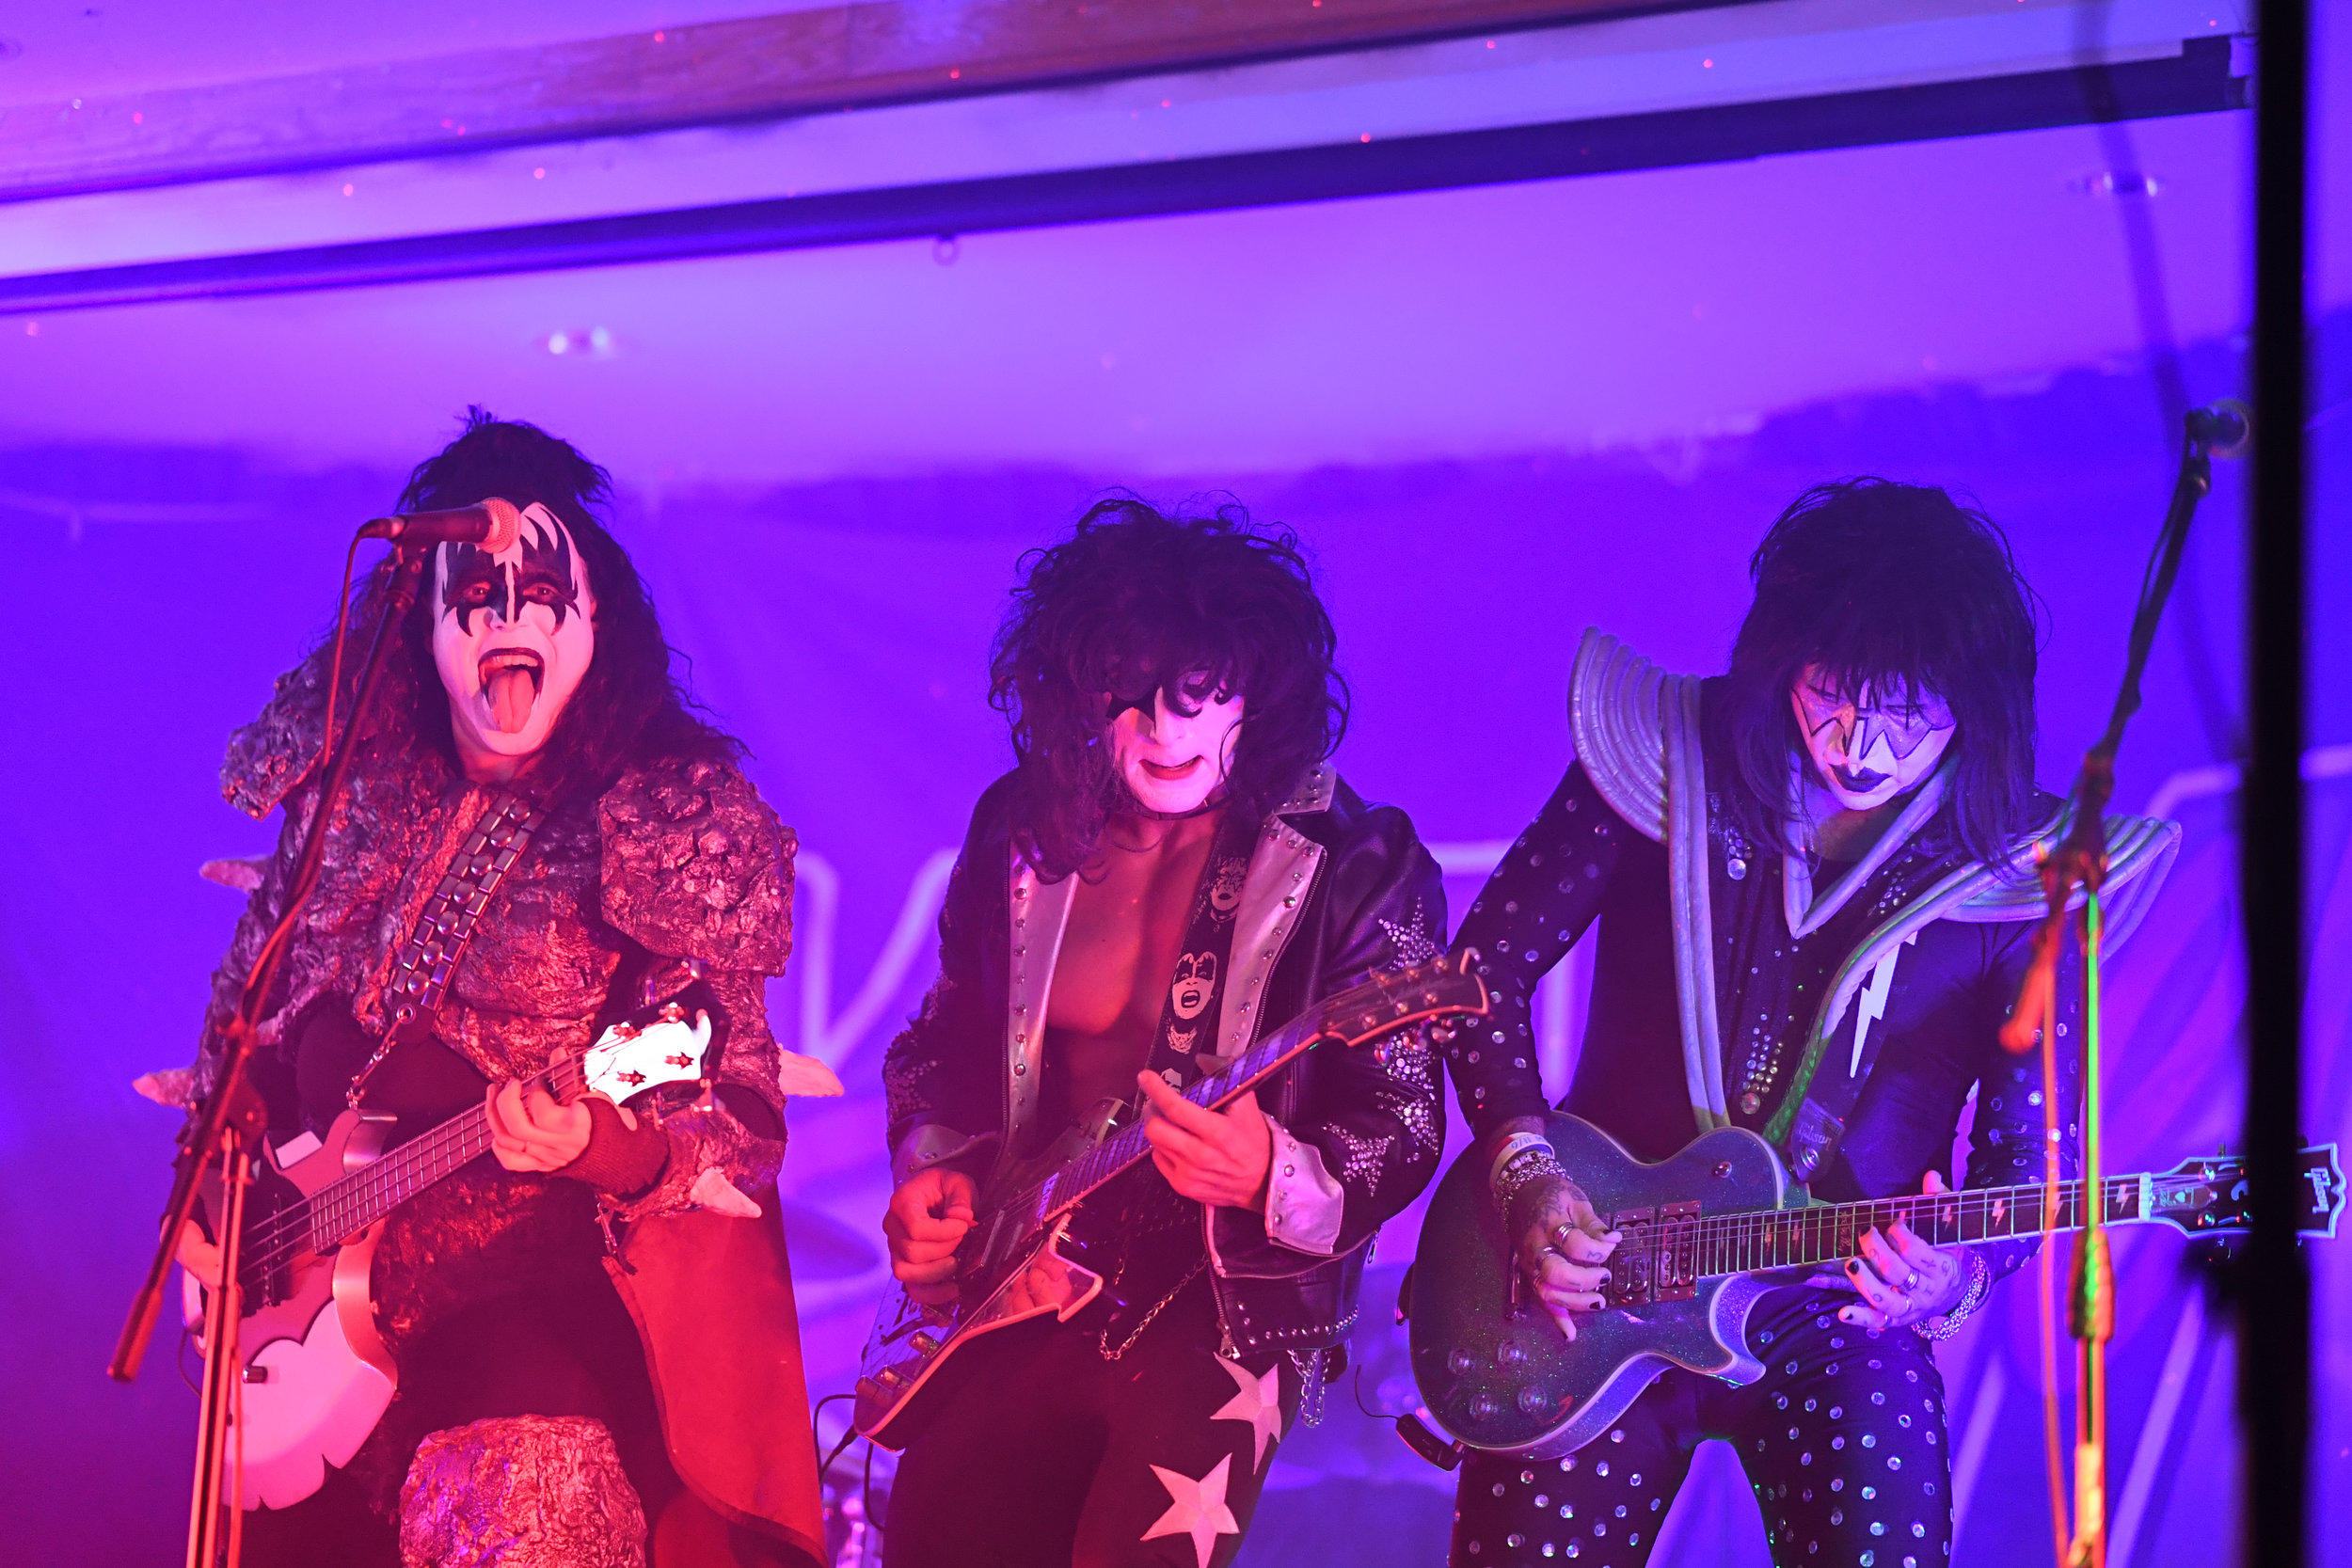 moa--kiss-forever-rock-addiction_31846539928_o.jpg